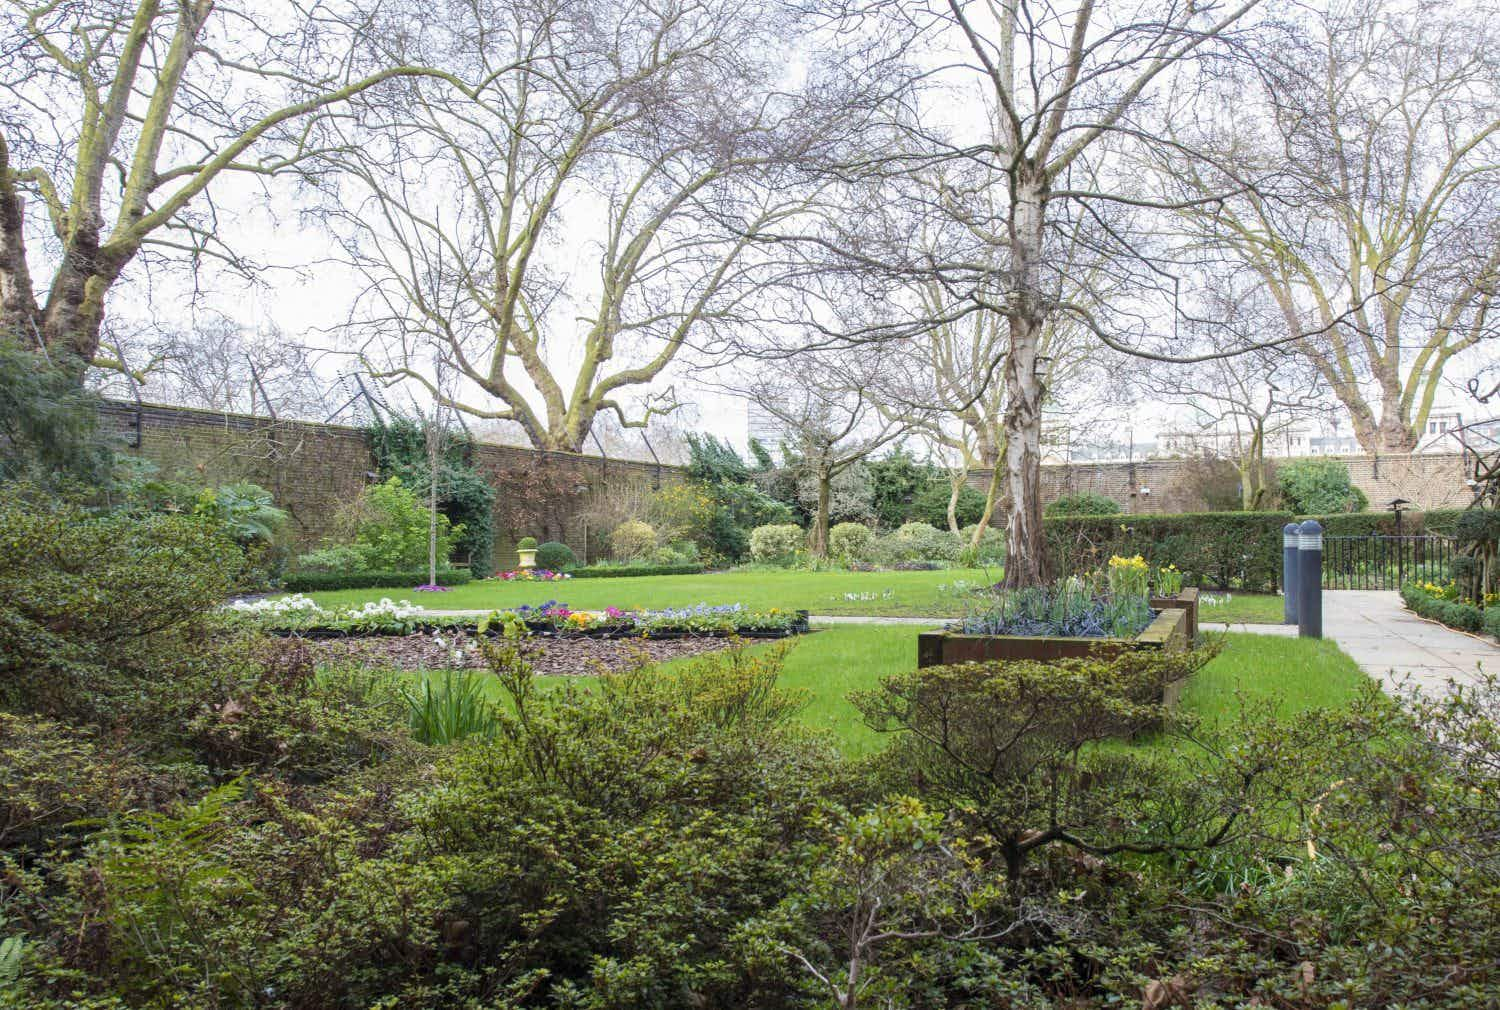 Take a peek inside the gardens at No 10 Downing Street